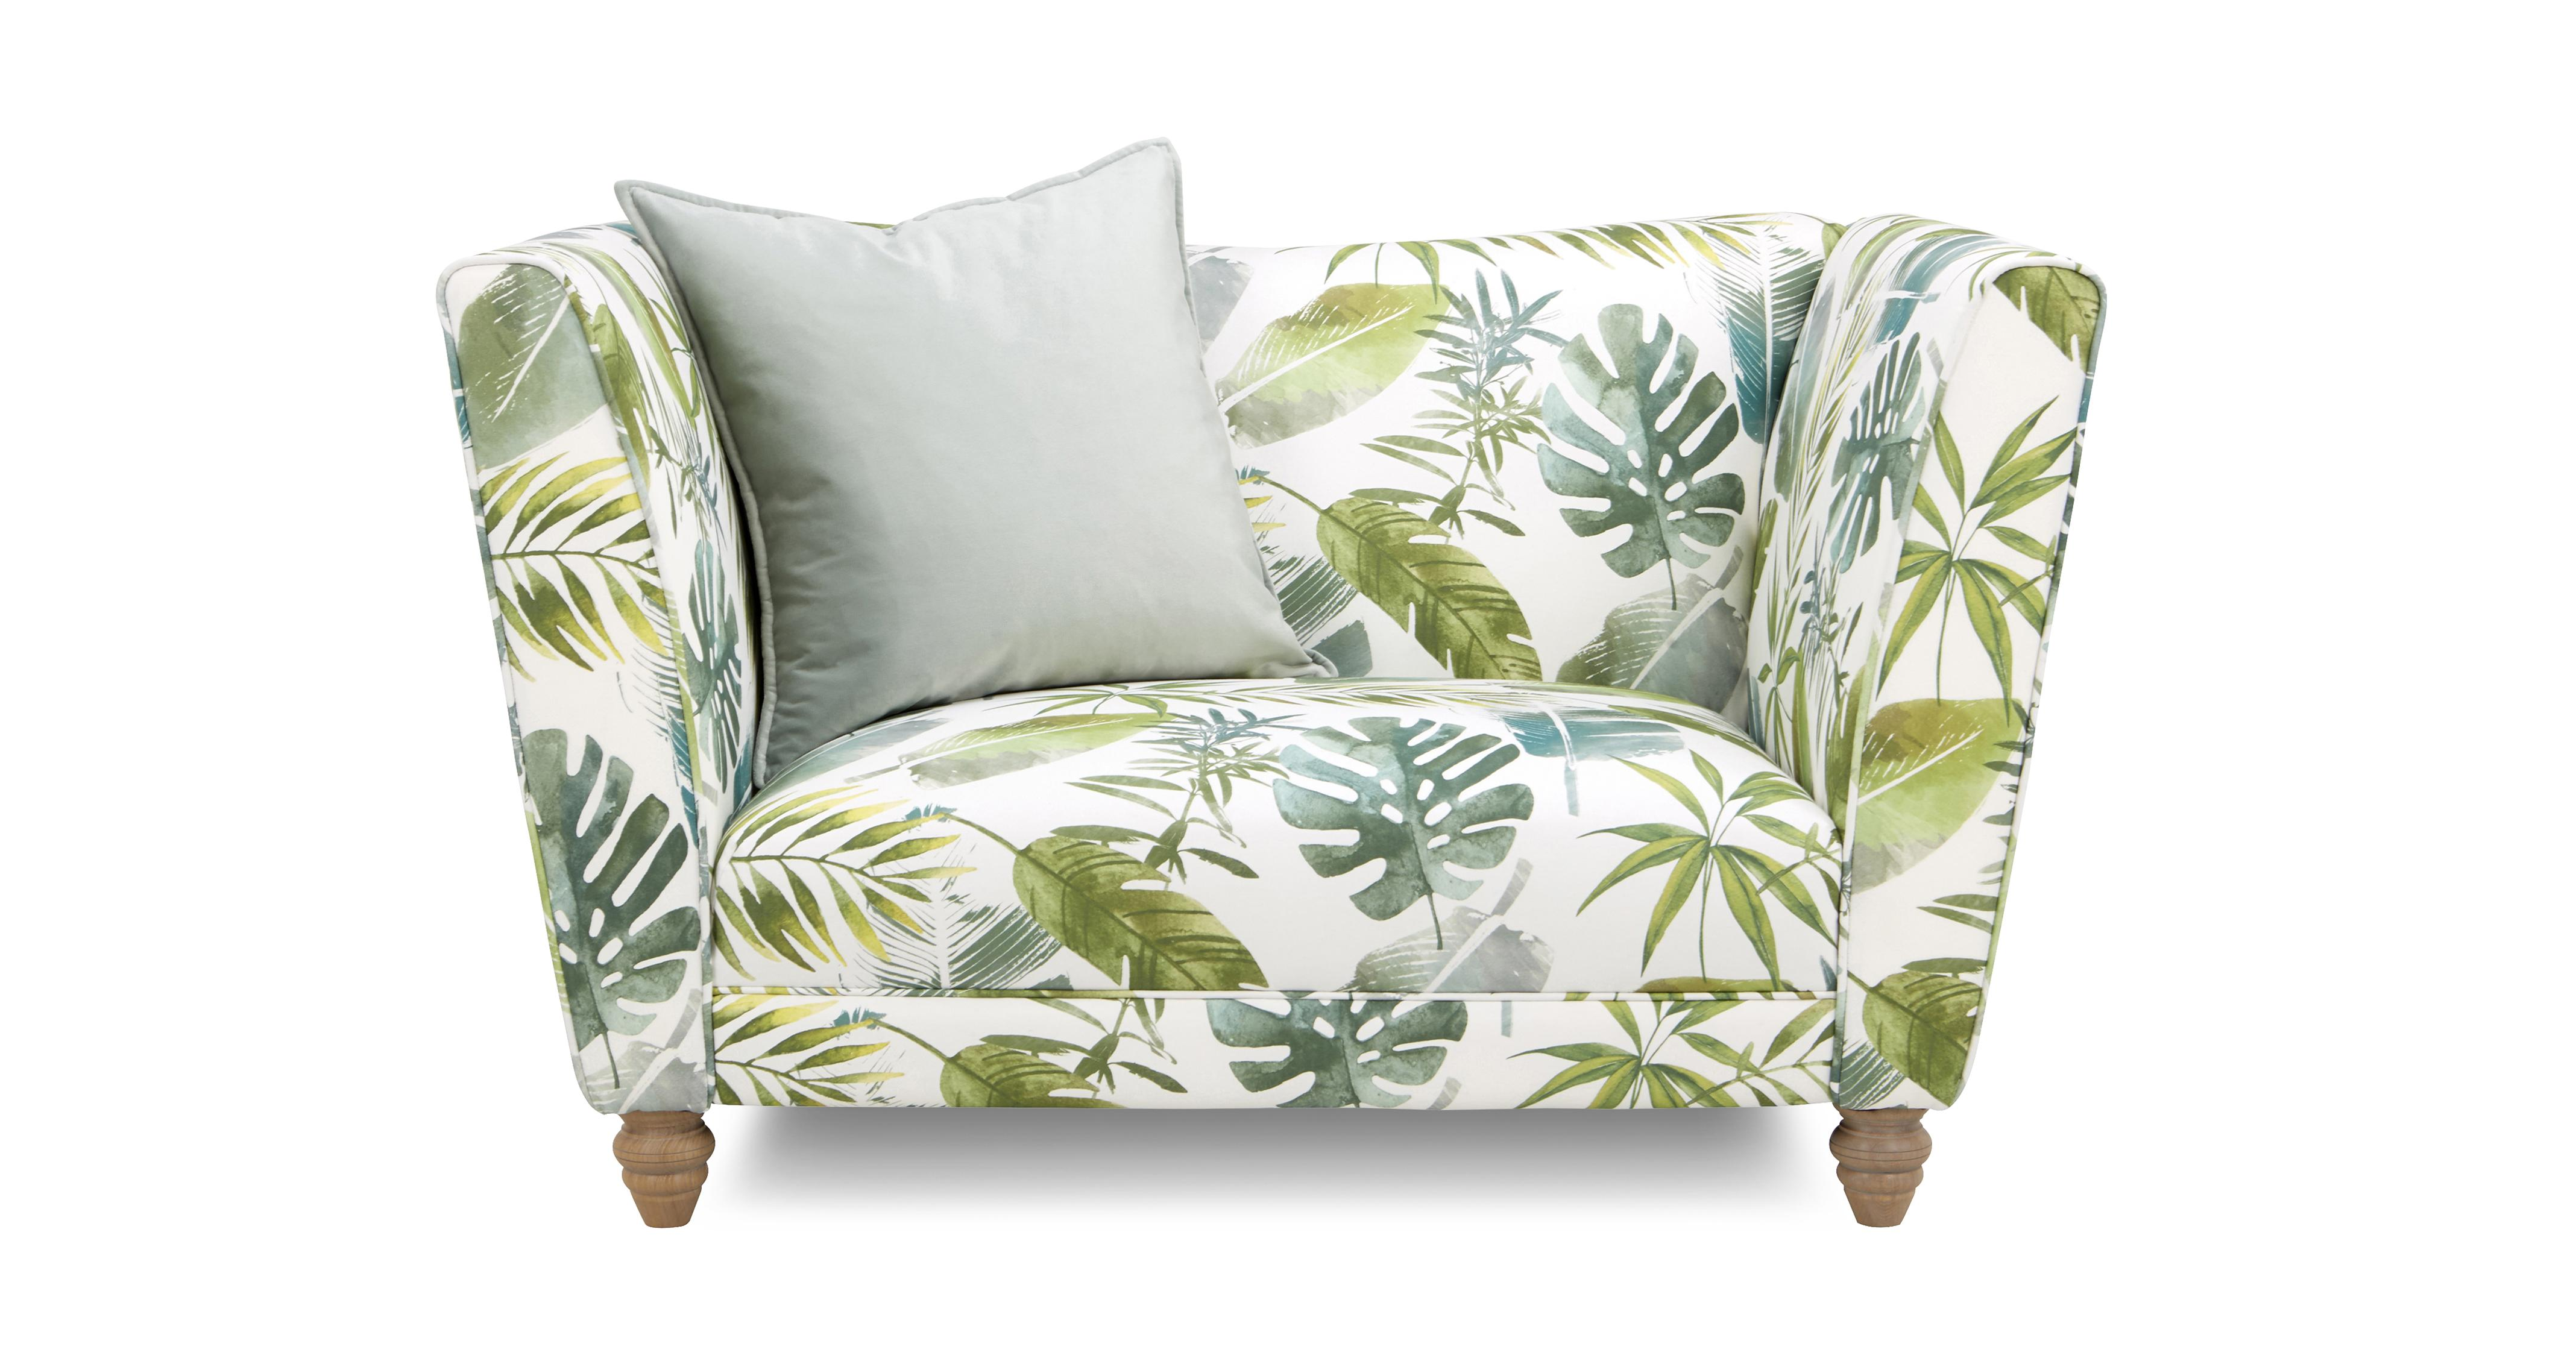 large chaise sofa dfs donate to goodwill fabric longue, swivel and snuggle chairs |